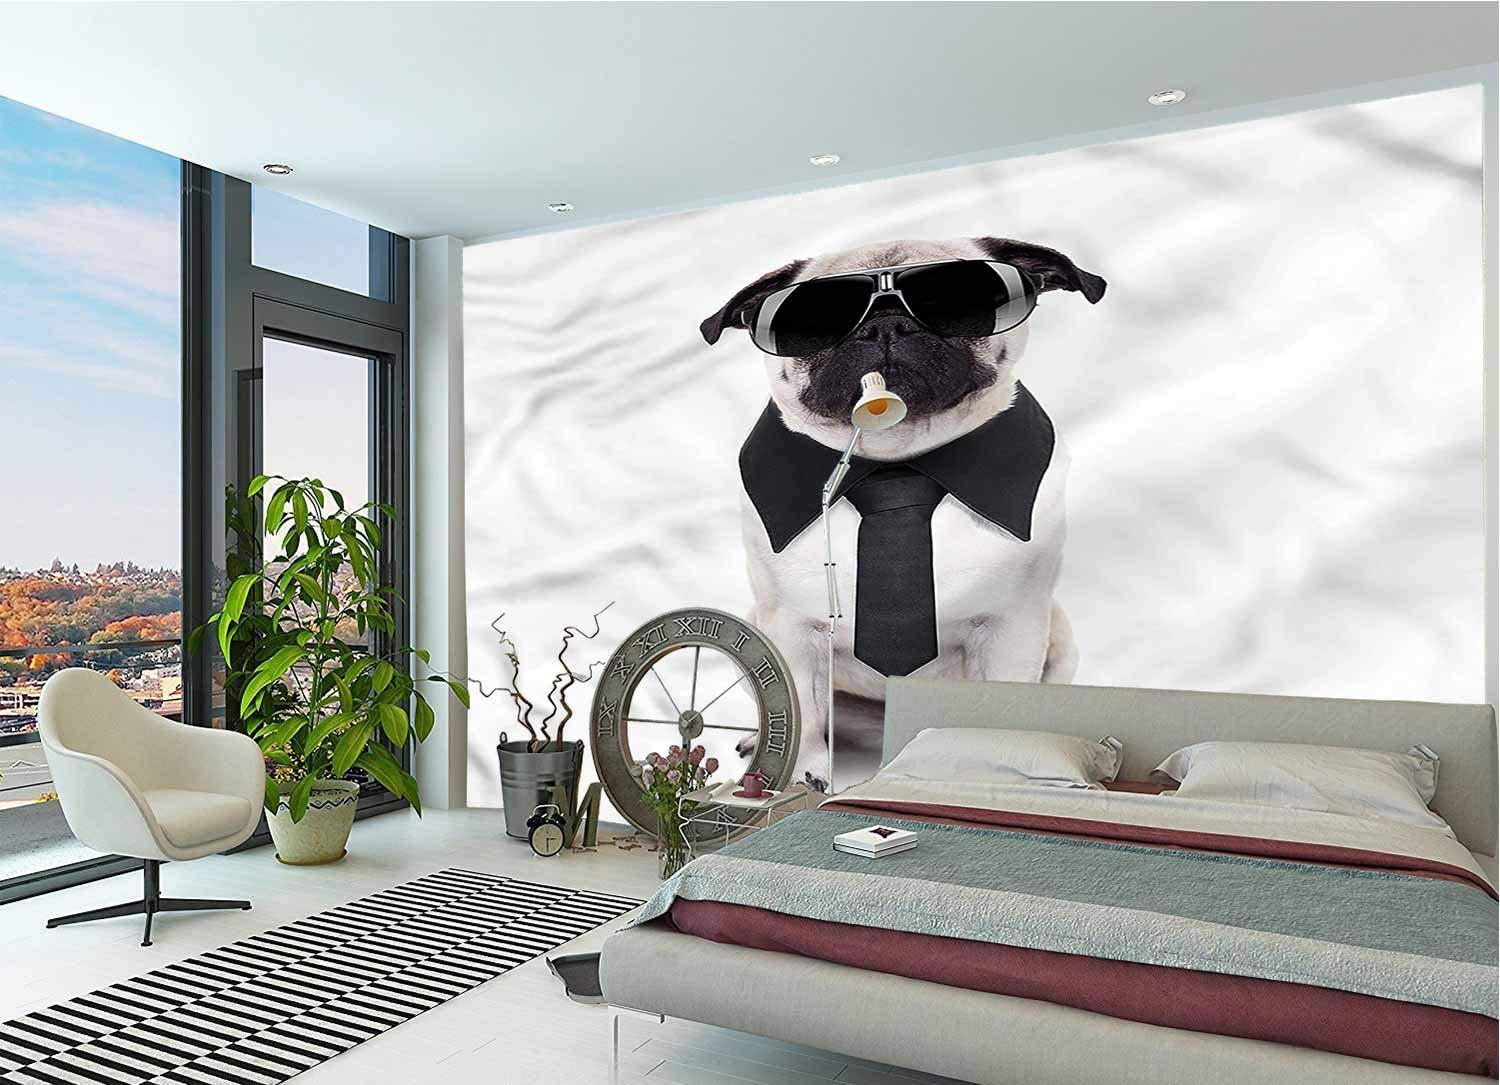 LCGGDB Pug Wall Stickers Murals,Cool Dog with Tie Glasses Large Photo Wallpaper for Office Livingroom Girls Bedroom Family Wall Decals-144x100 Inch